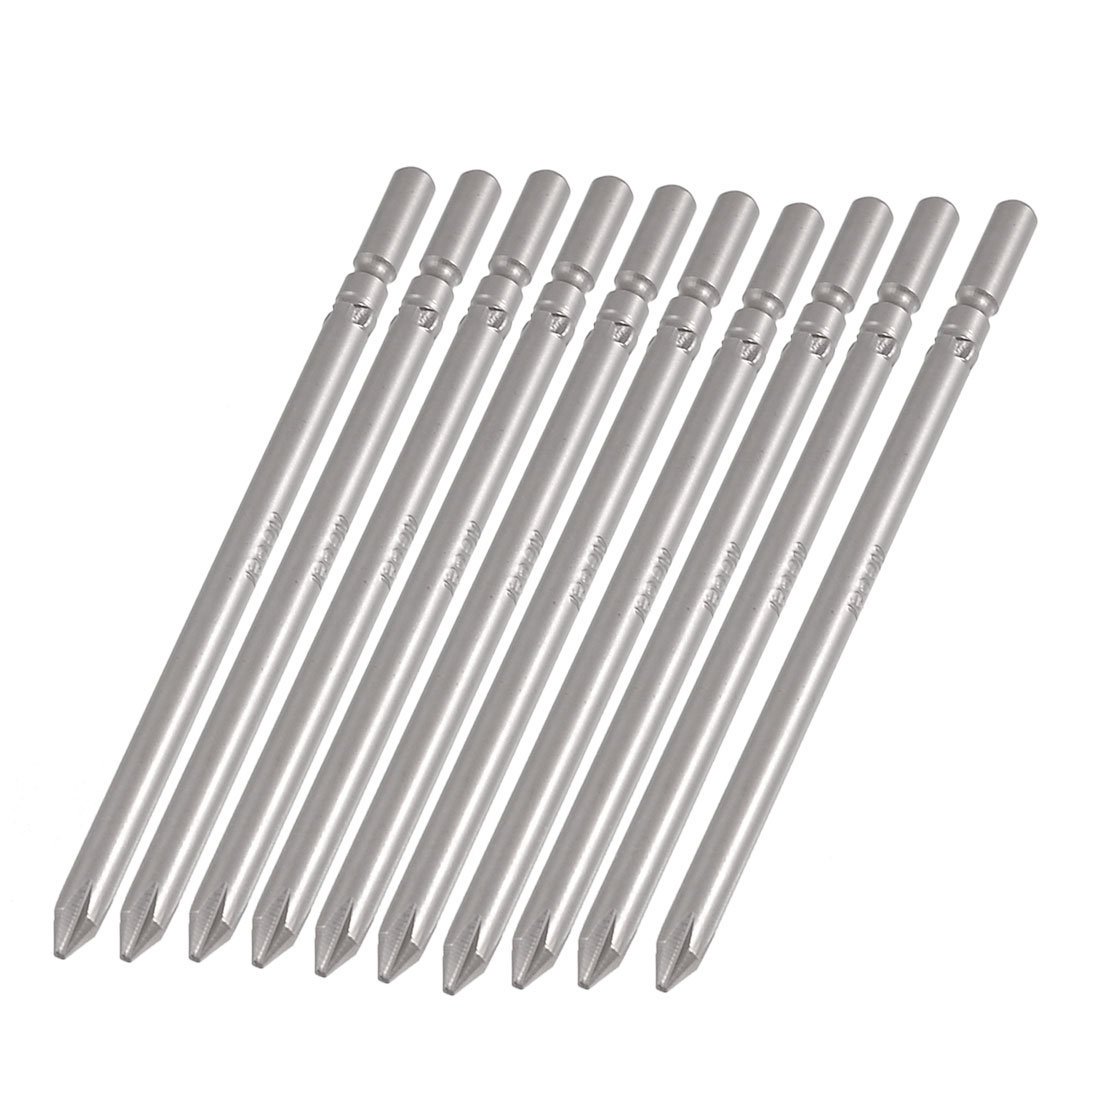 5mm x 100mm x 5mm Gray Metal Crosshead PH1 Screwdriver Bits 10Pcs